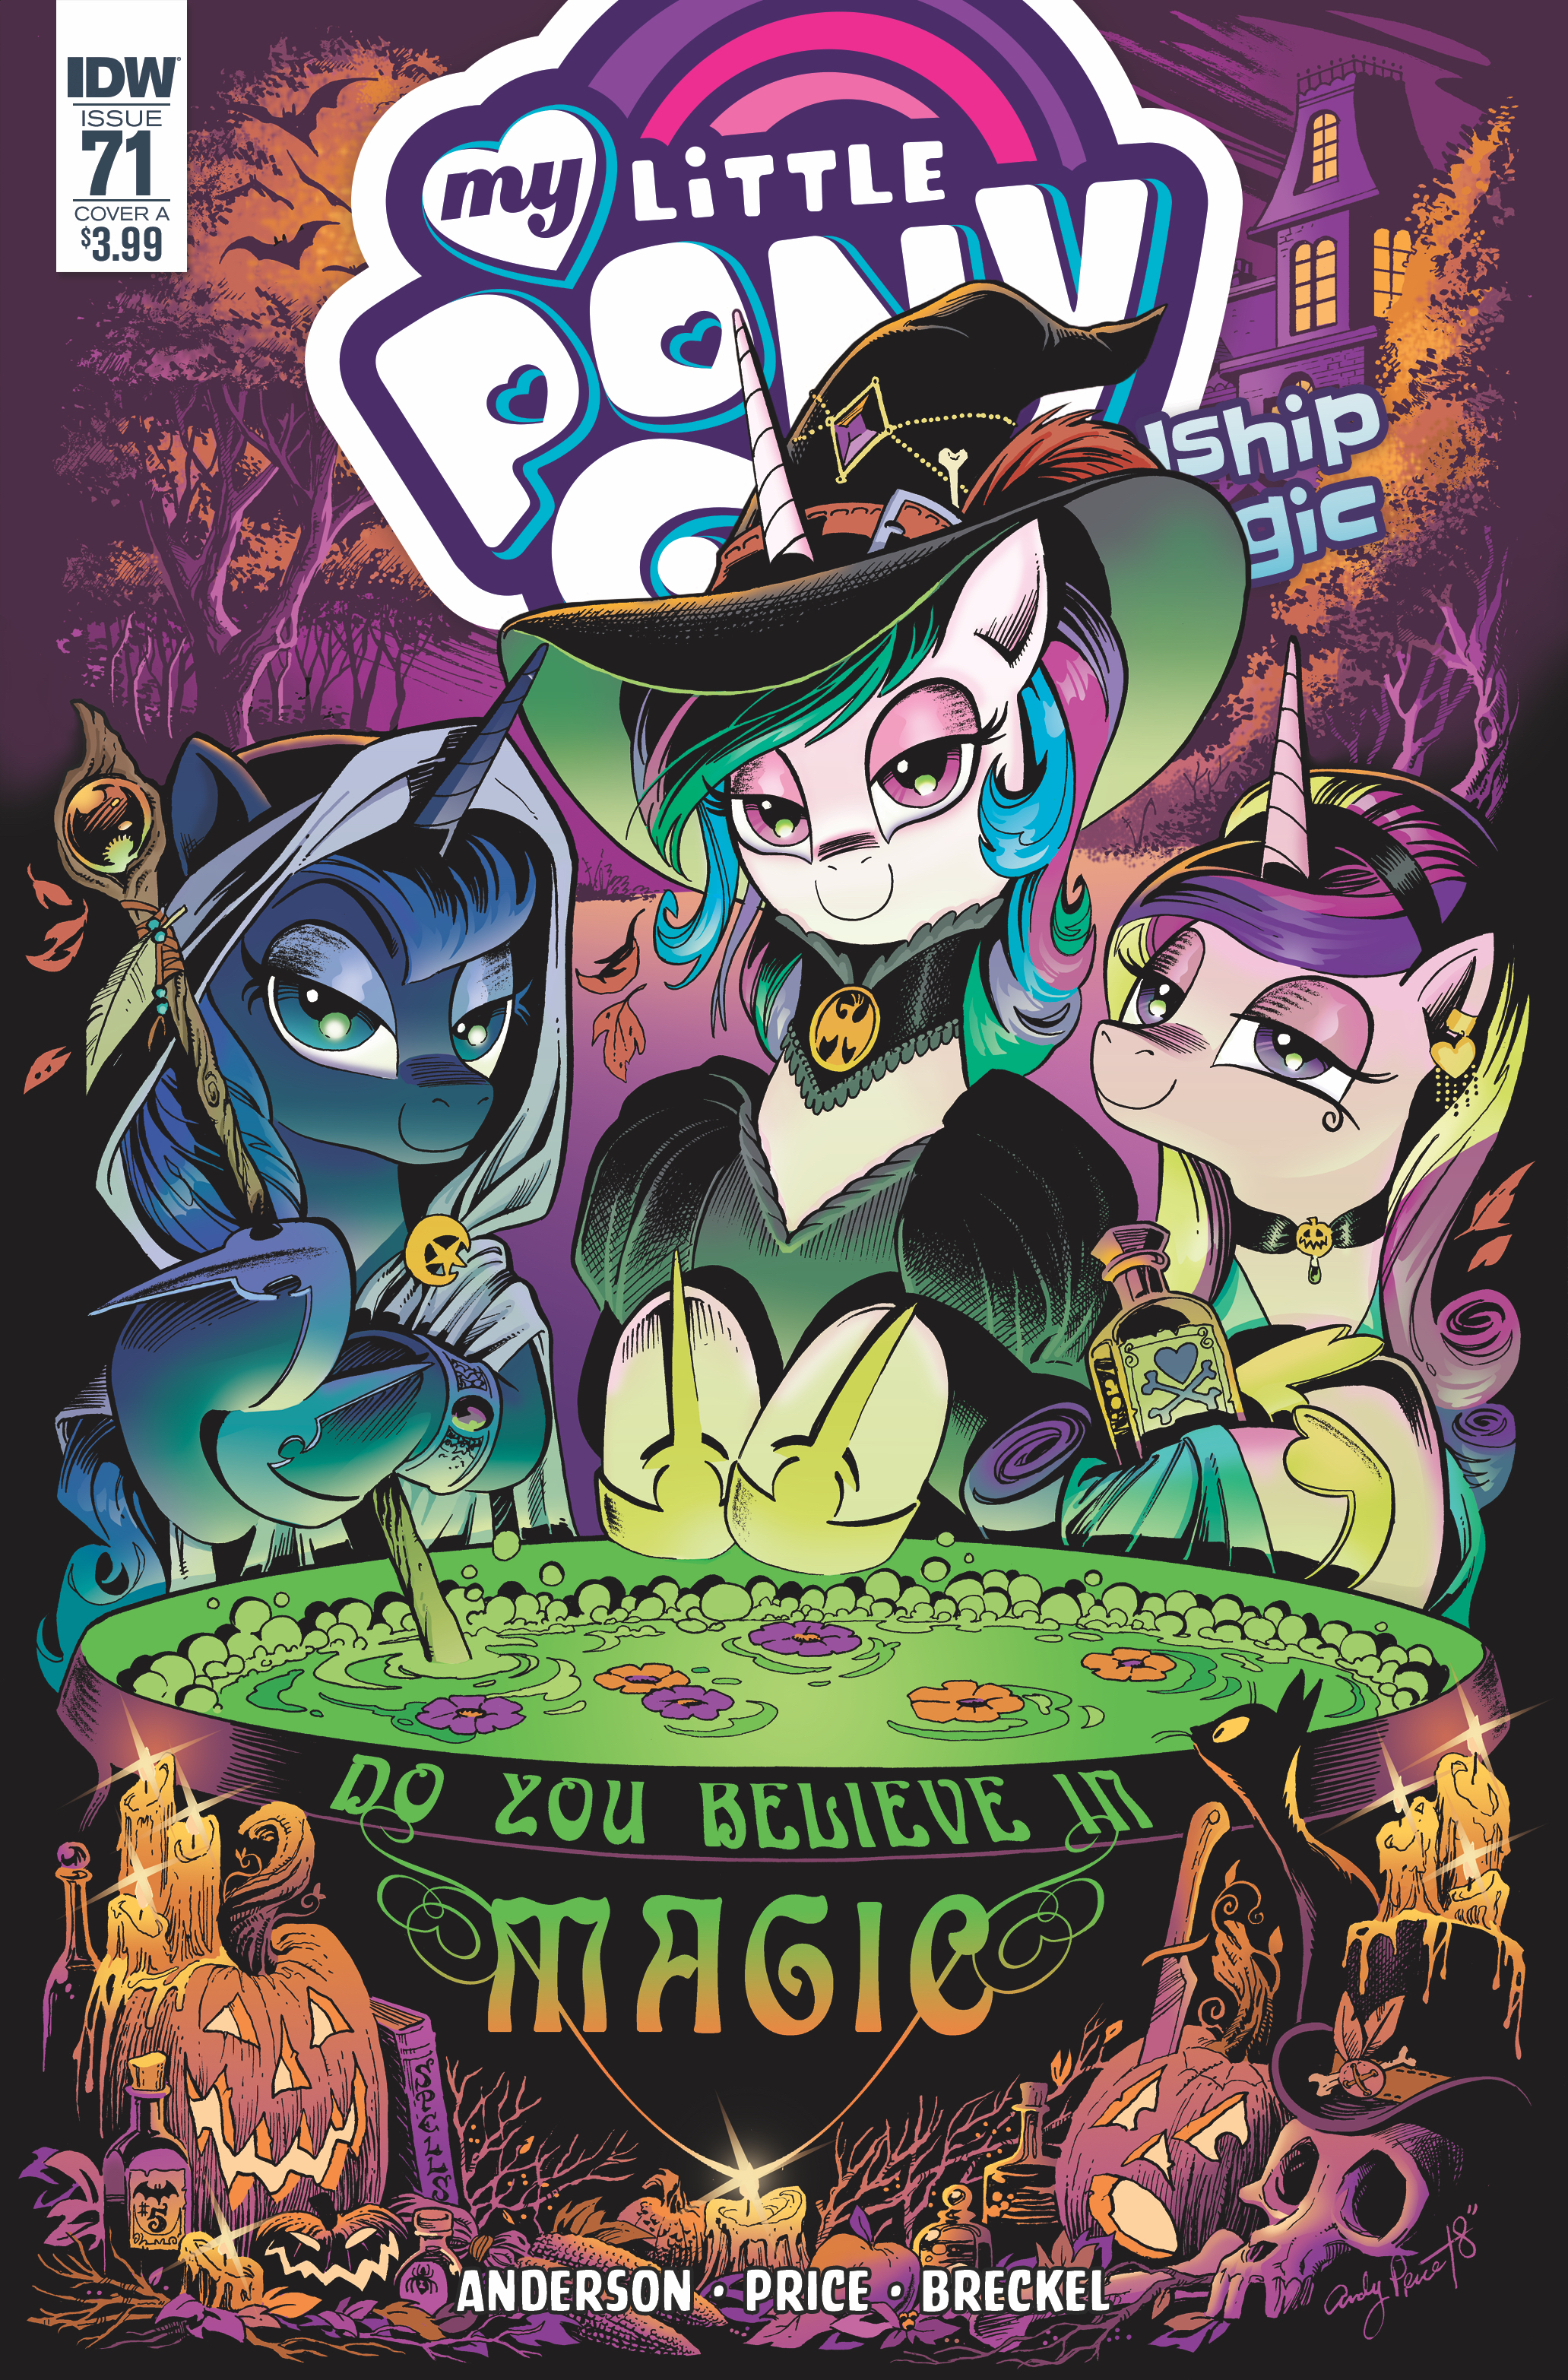 MY LITTLE PONY FRIENDSHIP IS MAGIC #71 CVR A PRICE